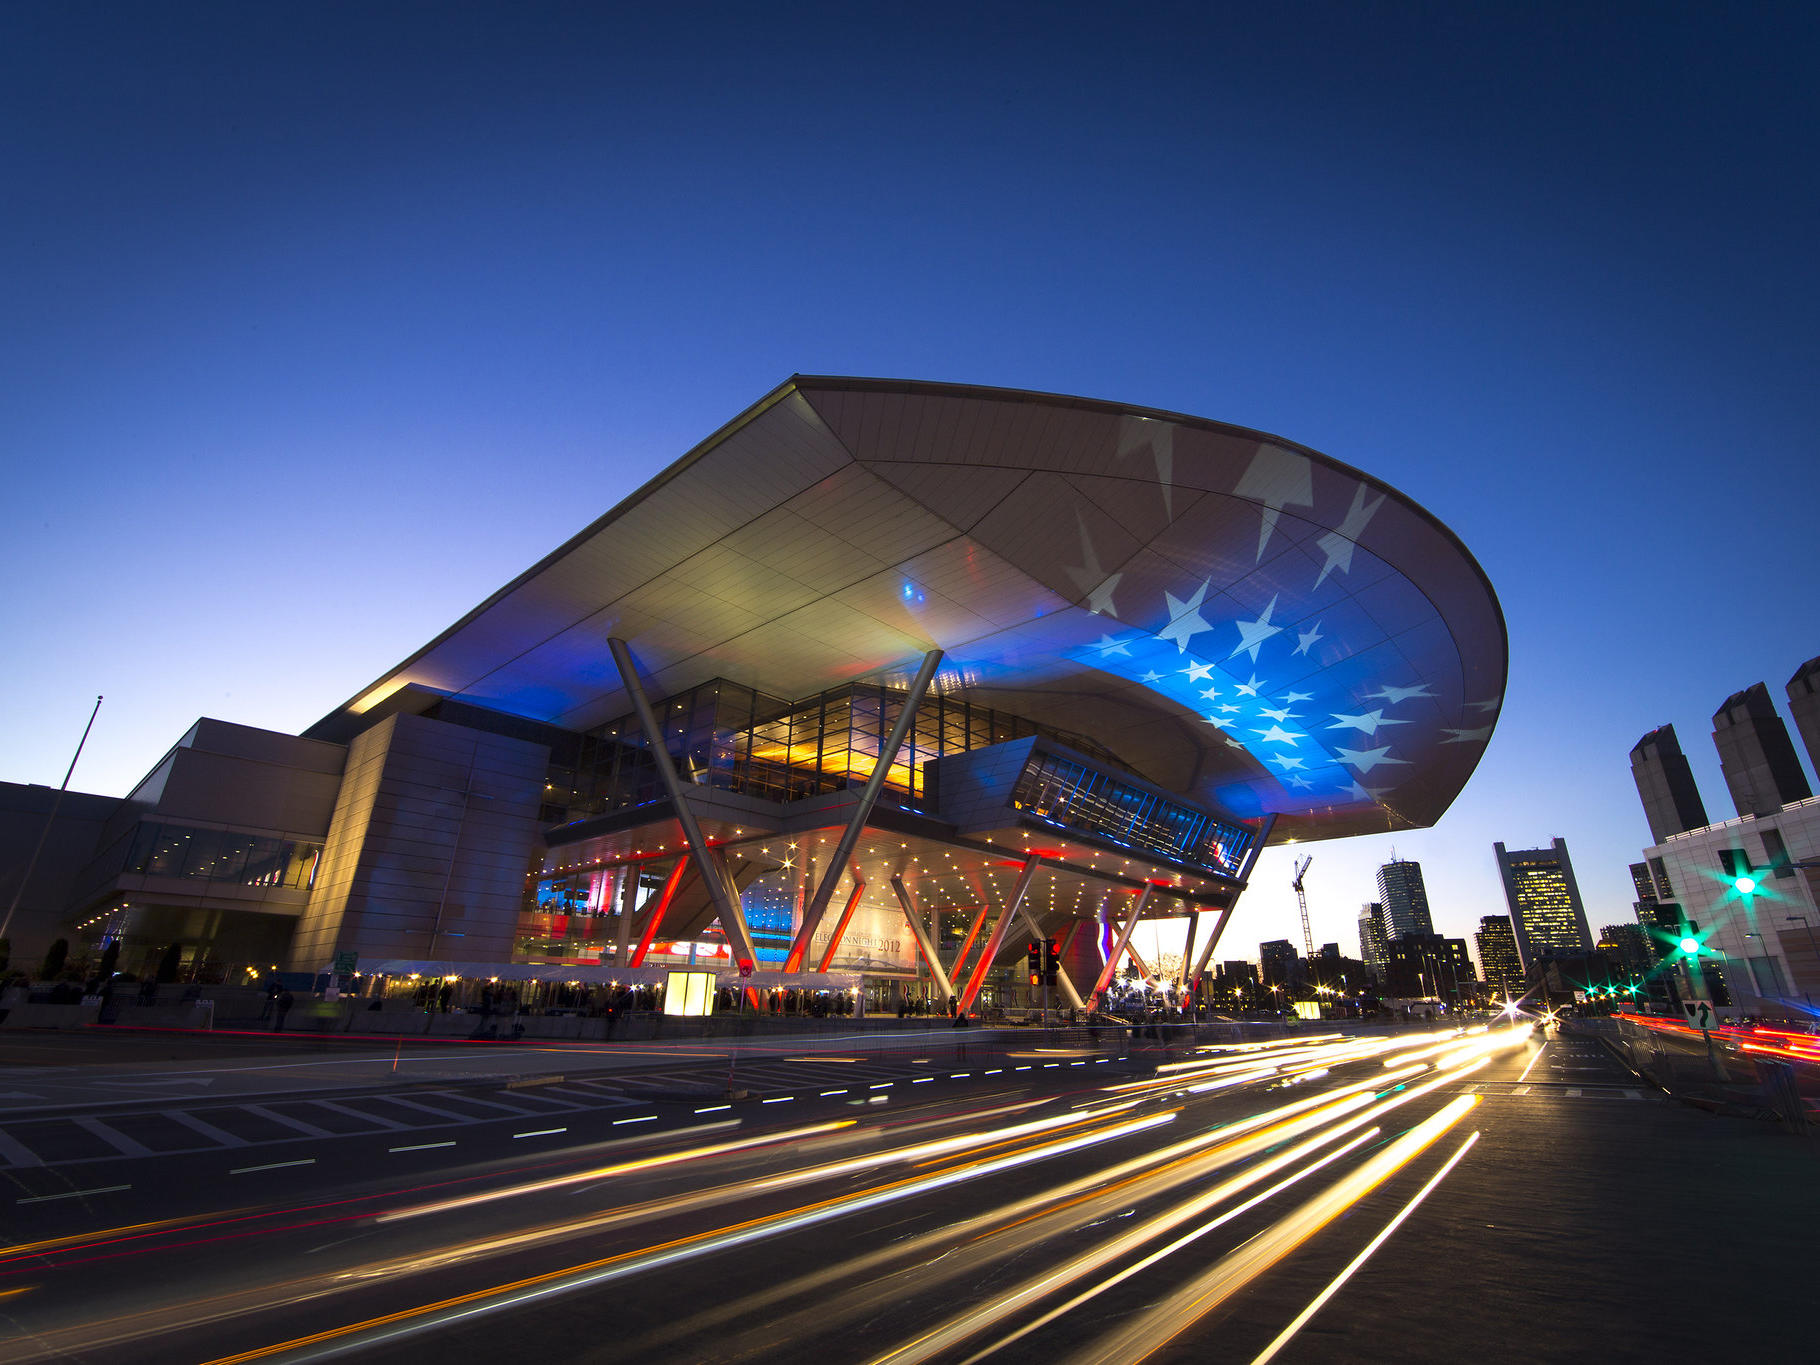 Exterior of Boston Convention & Exhibition Center at night